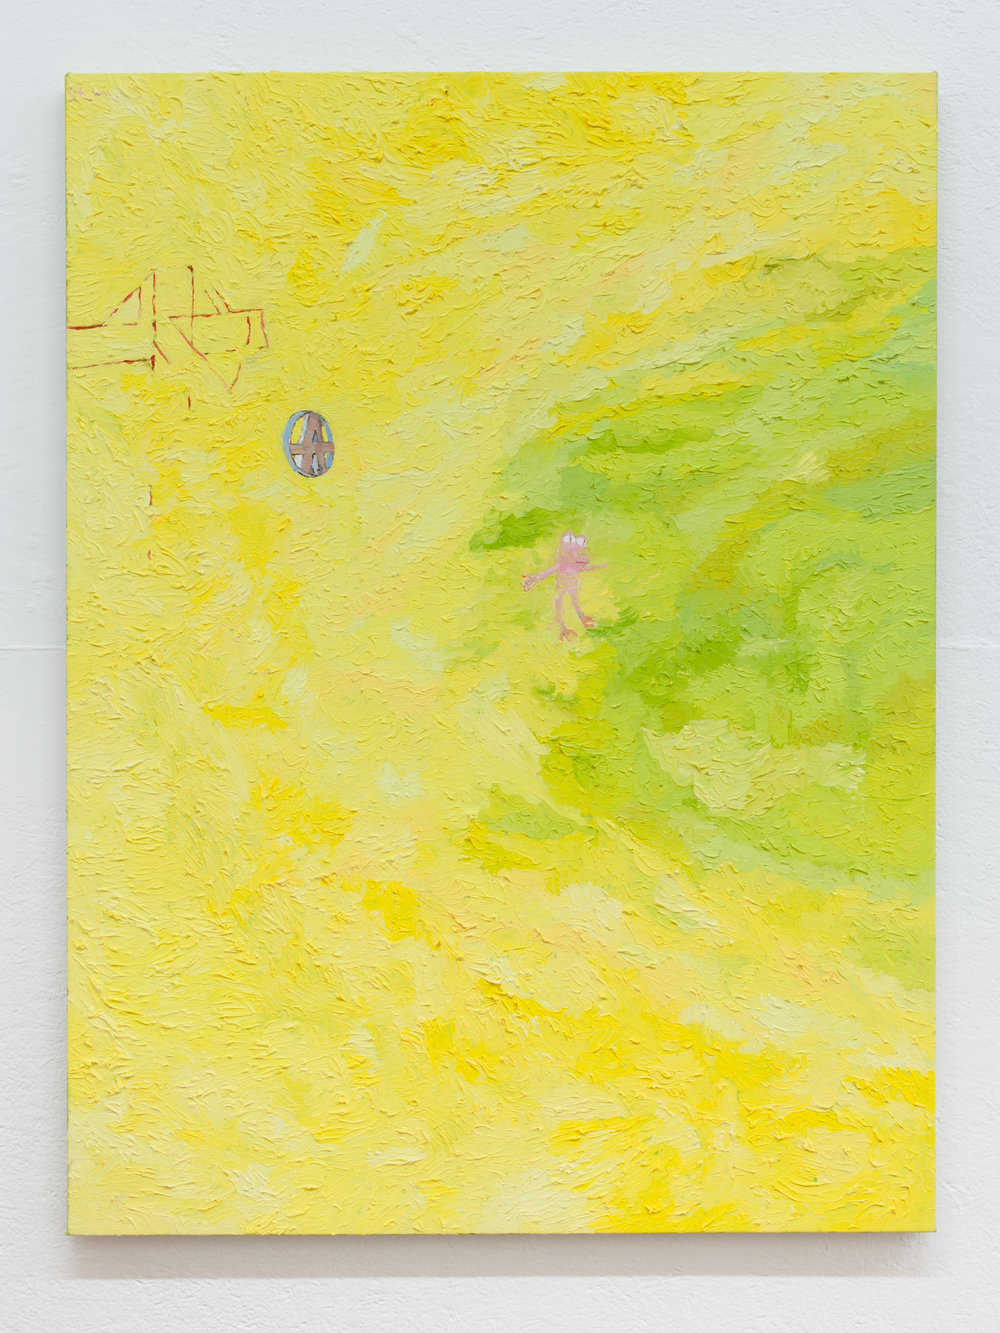 Jesse Sullivan,  Piss Frog , 2017, Oil on Canvas, 40 x 30 inches